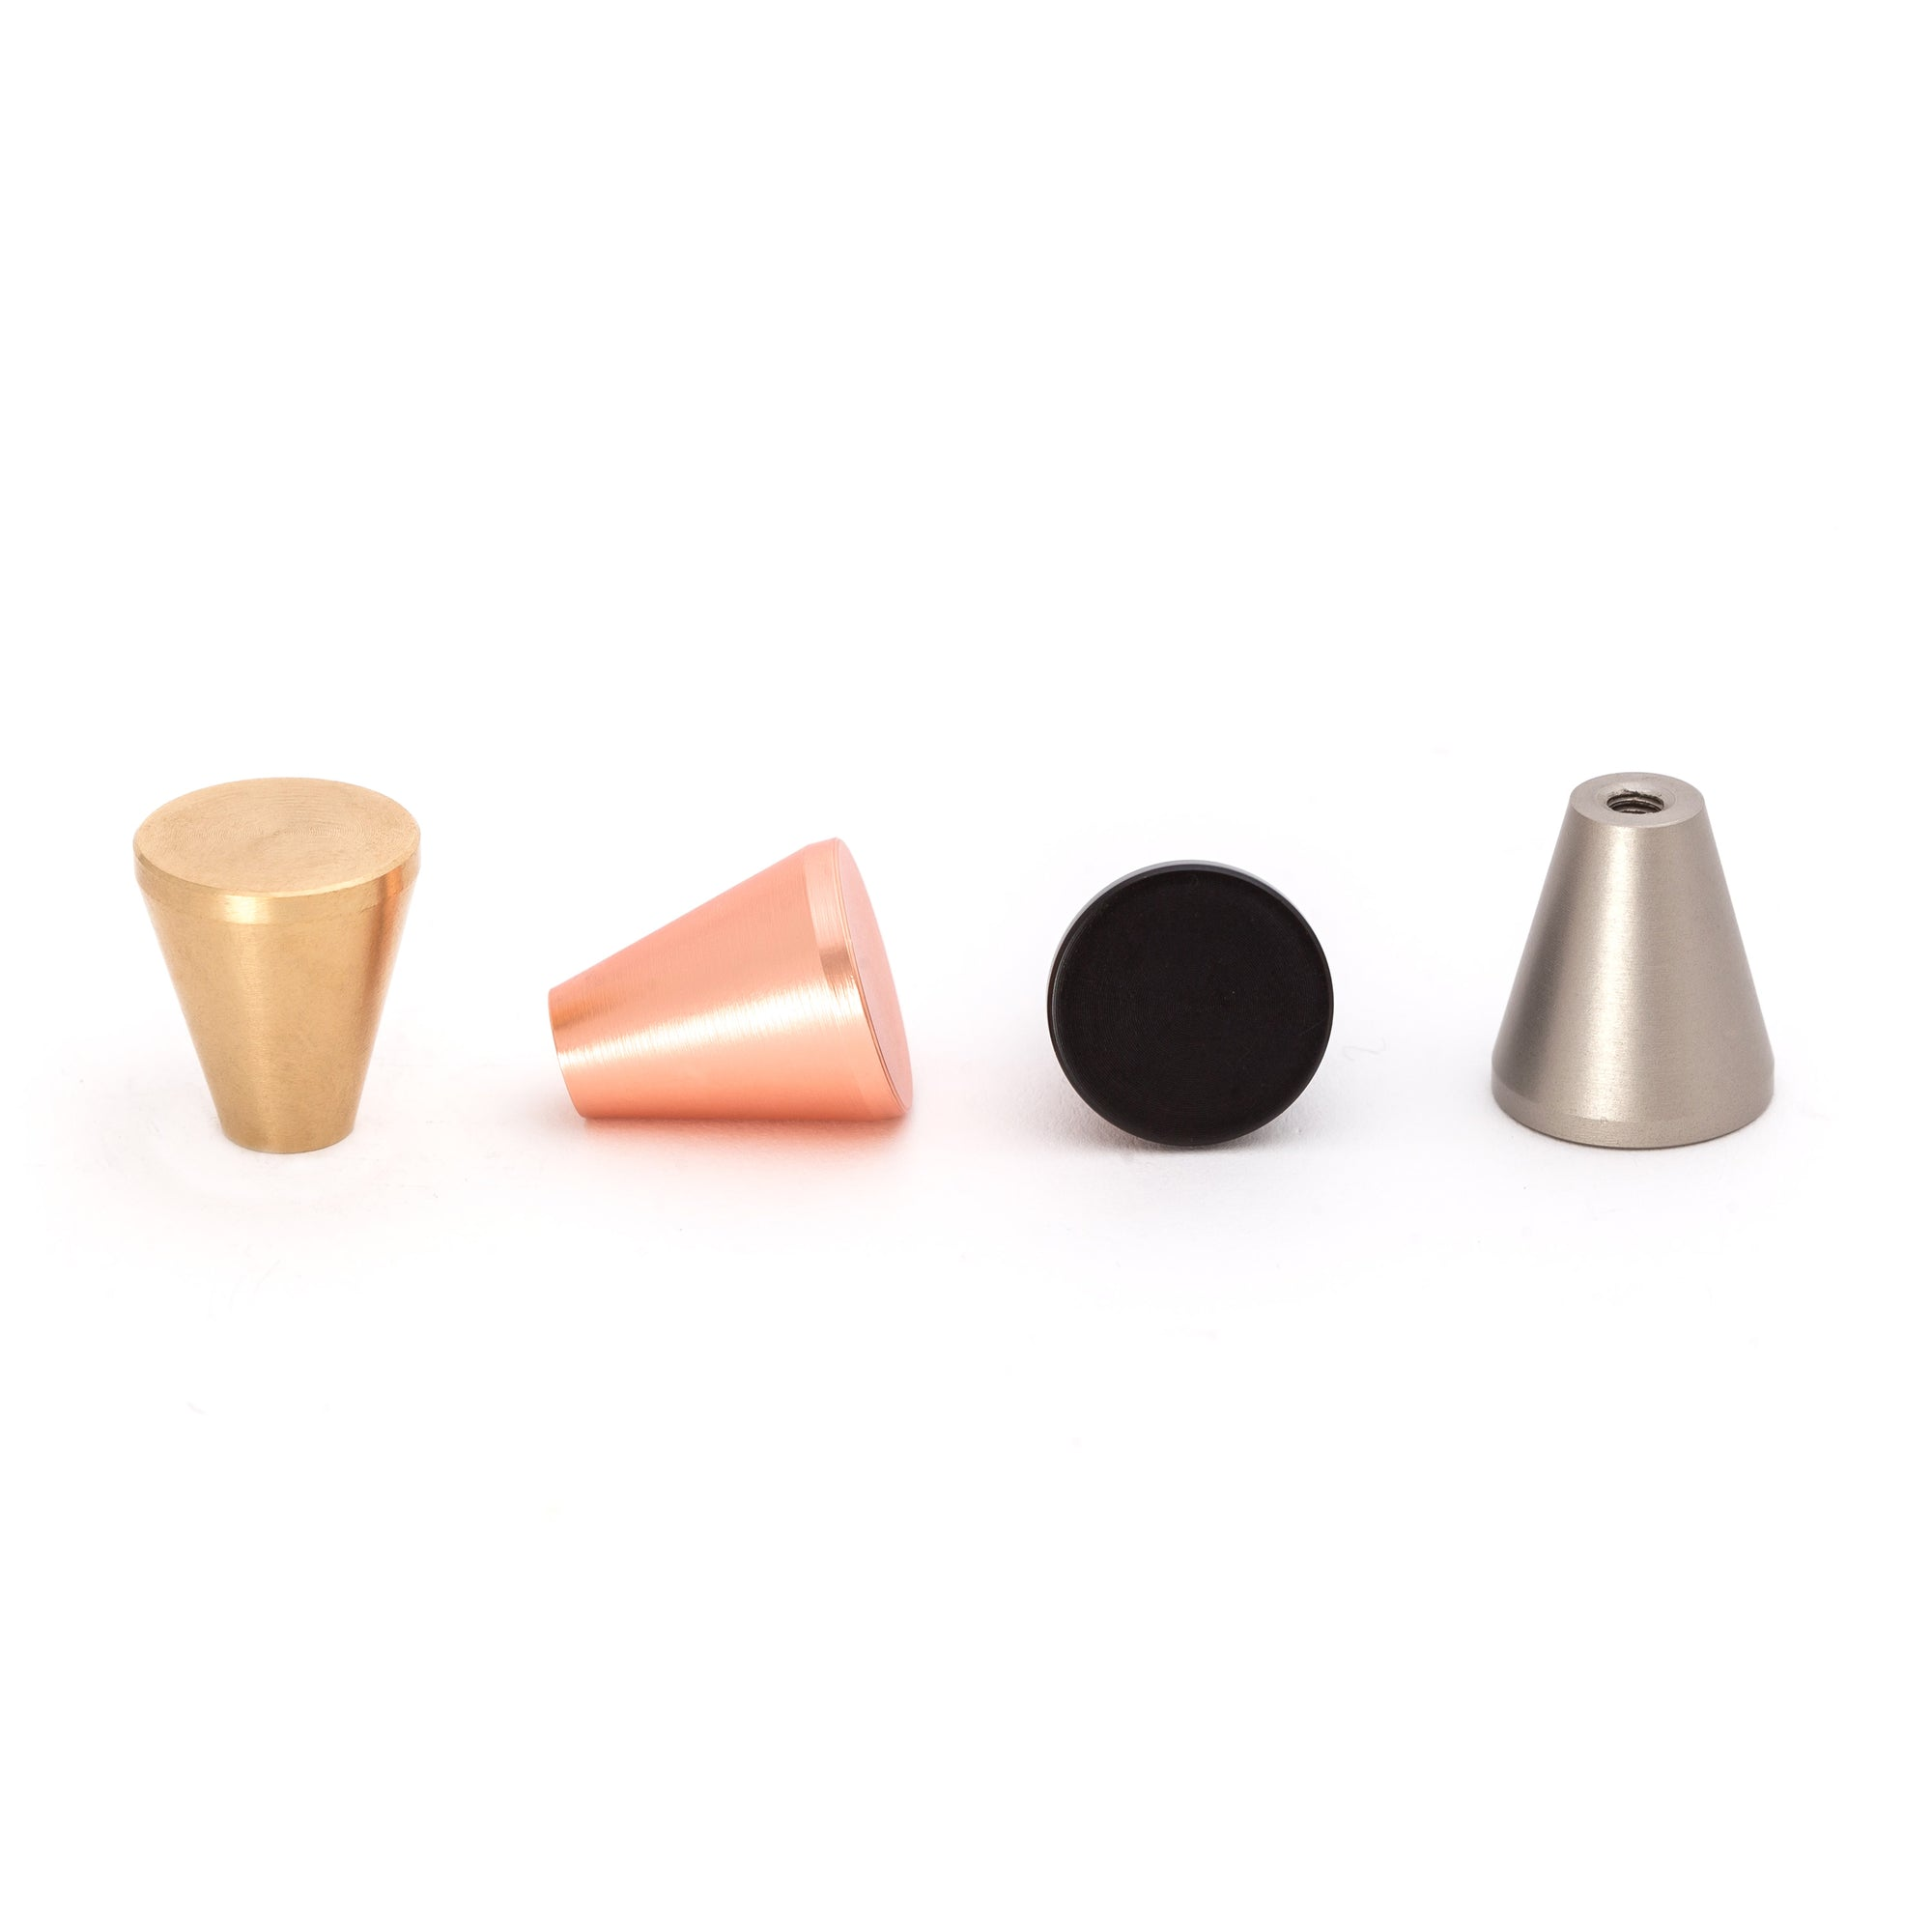 Conical 18mm Knob